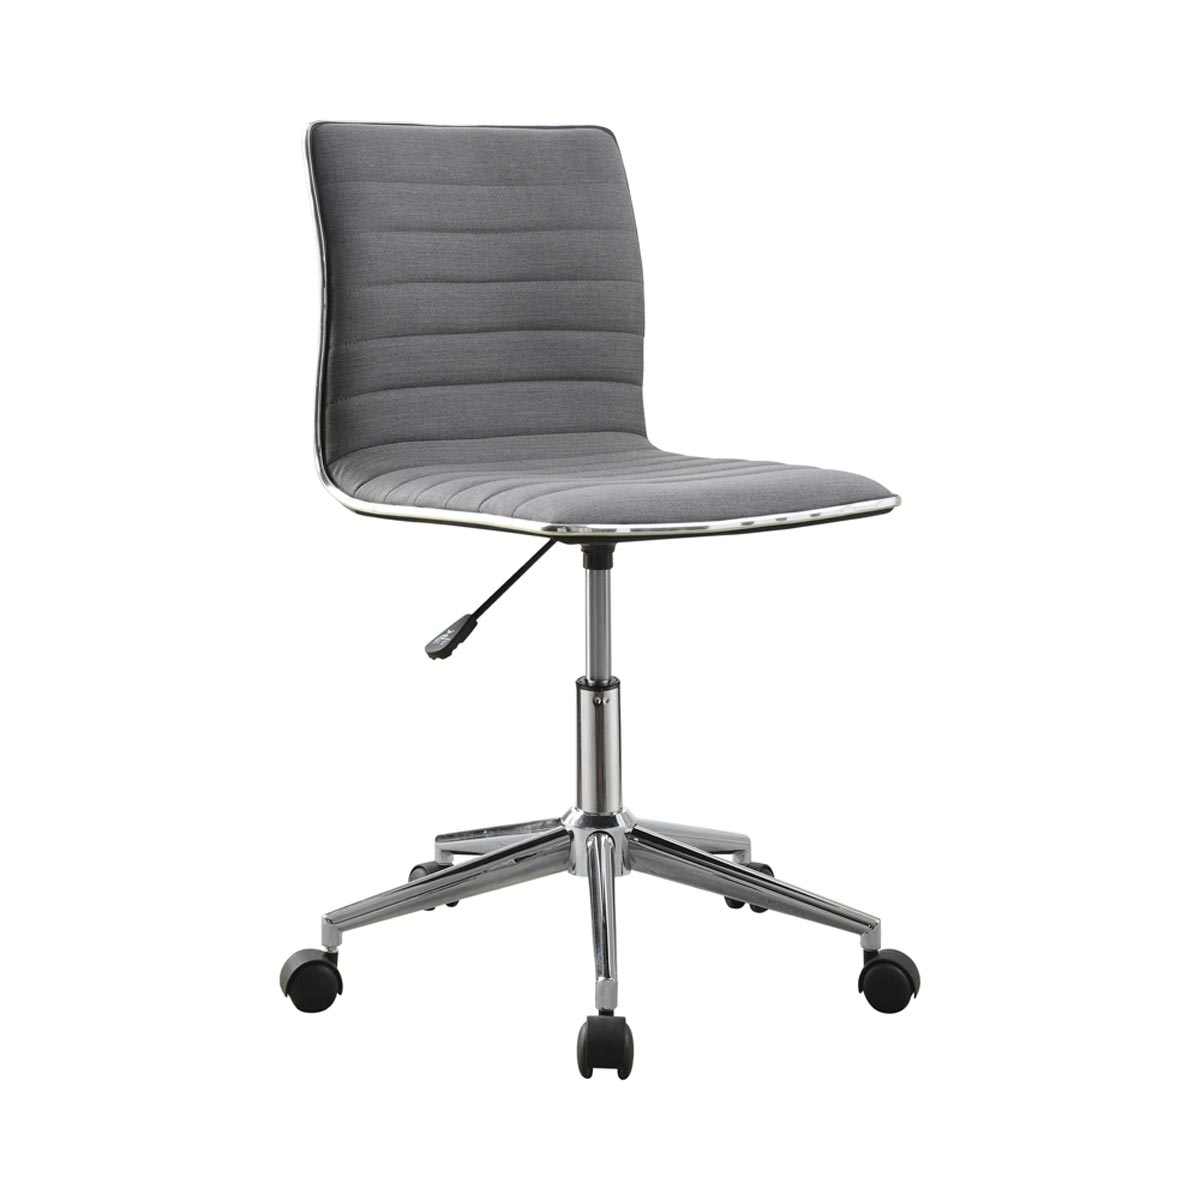 Low-Back Adjustable Height Fabric Uphostery Office Chair, Gray/Chrome